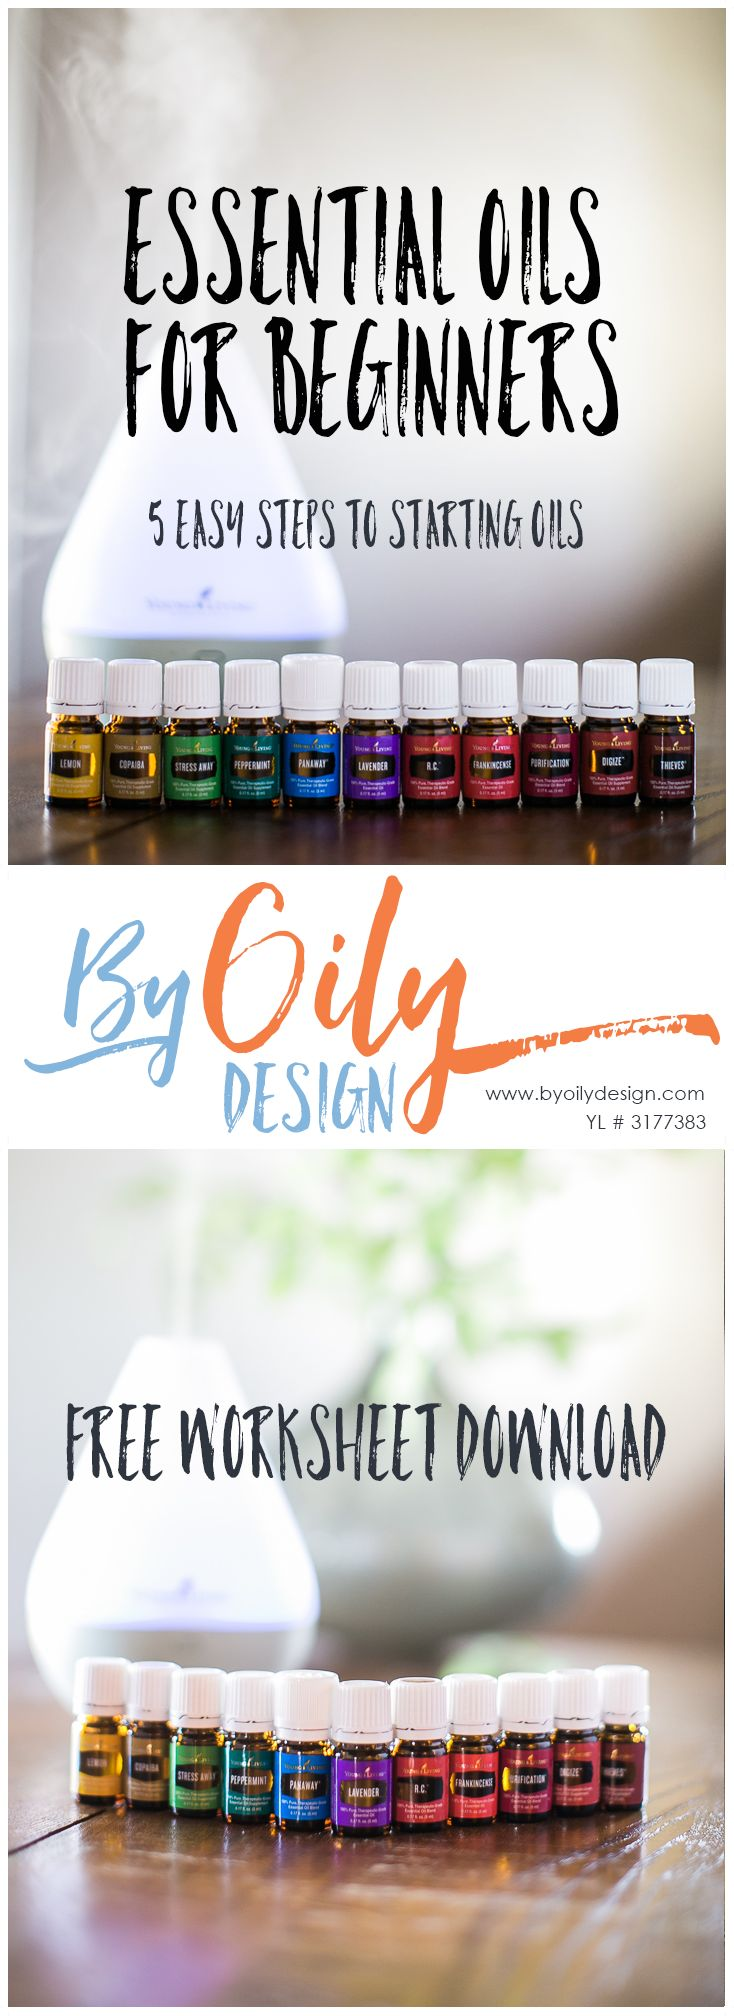 Essential Oils for beginners worksheet for helping you get started with Essential Oils. 5 Step process to getting started with Essential Oils. Essential Oils guide for beginners. www.byoilydesign.com YL#3177383